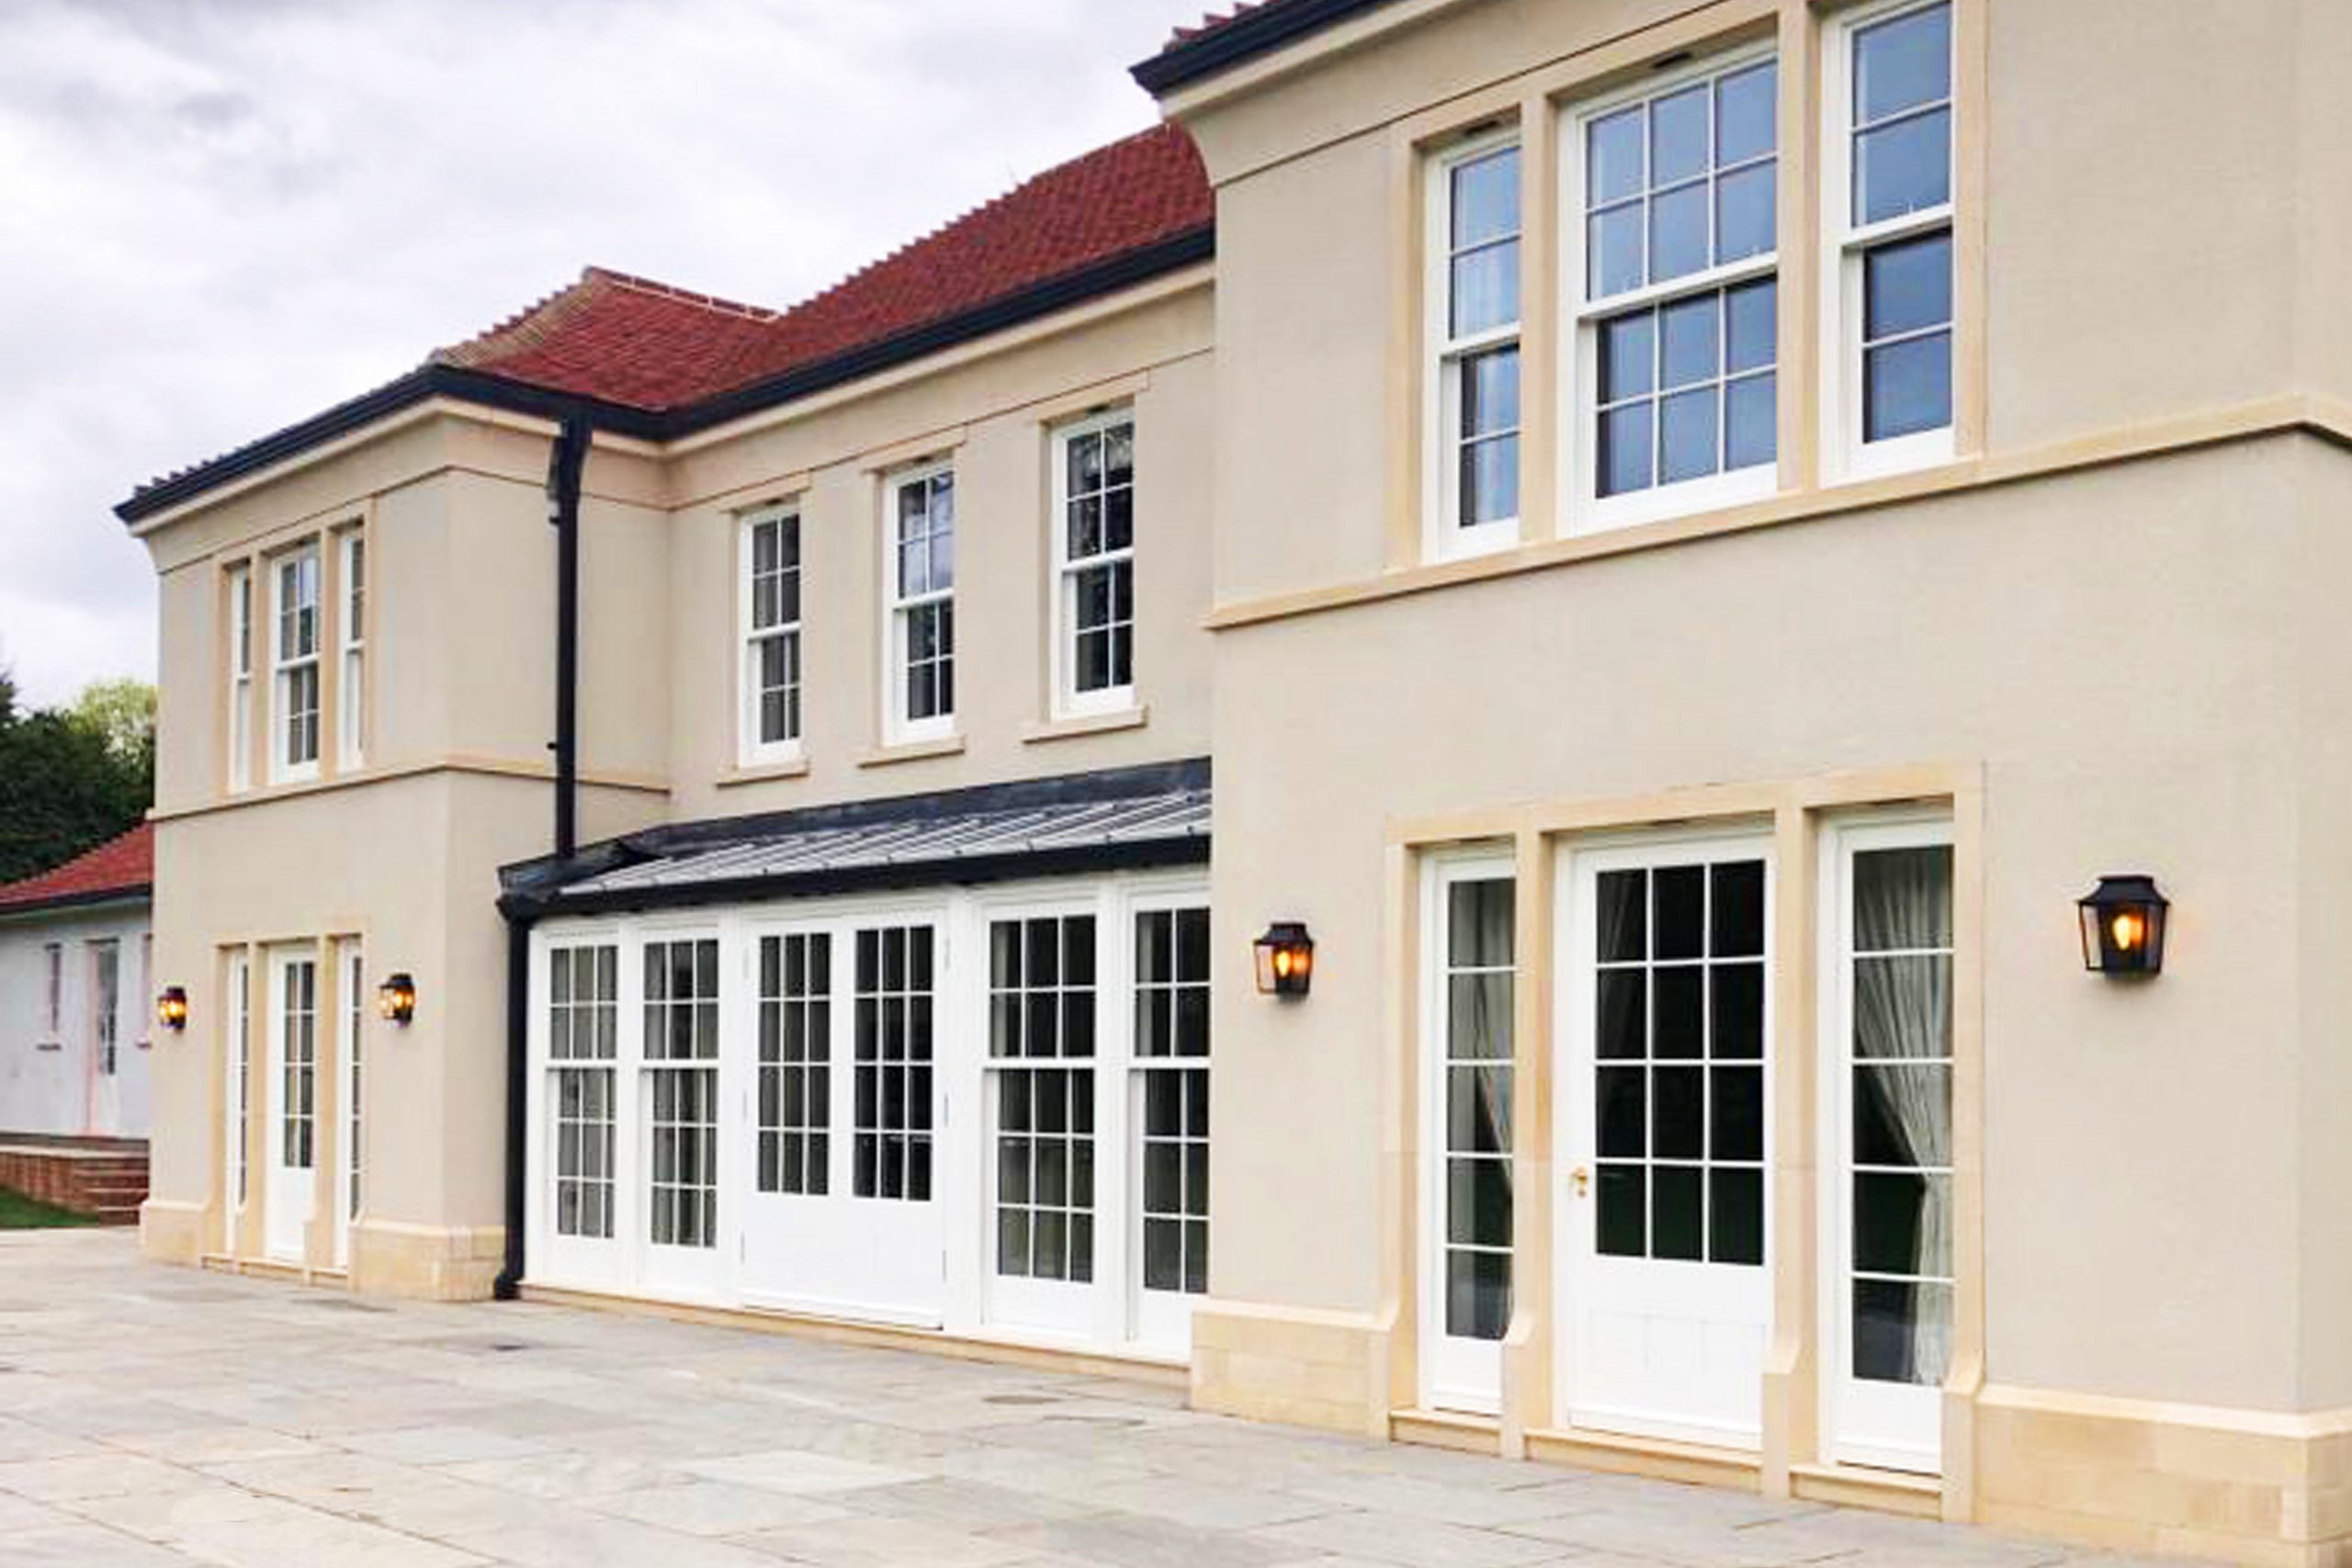 New classical house in English countryside